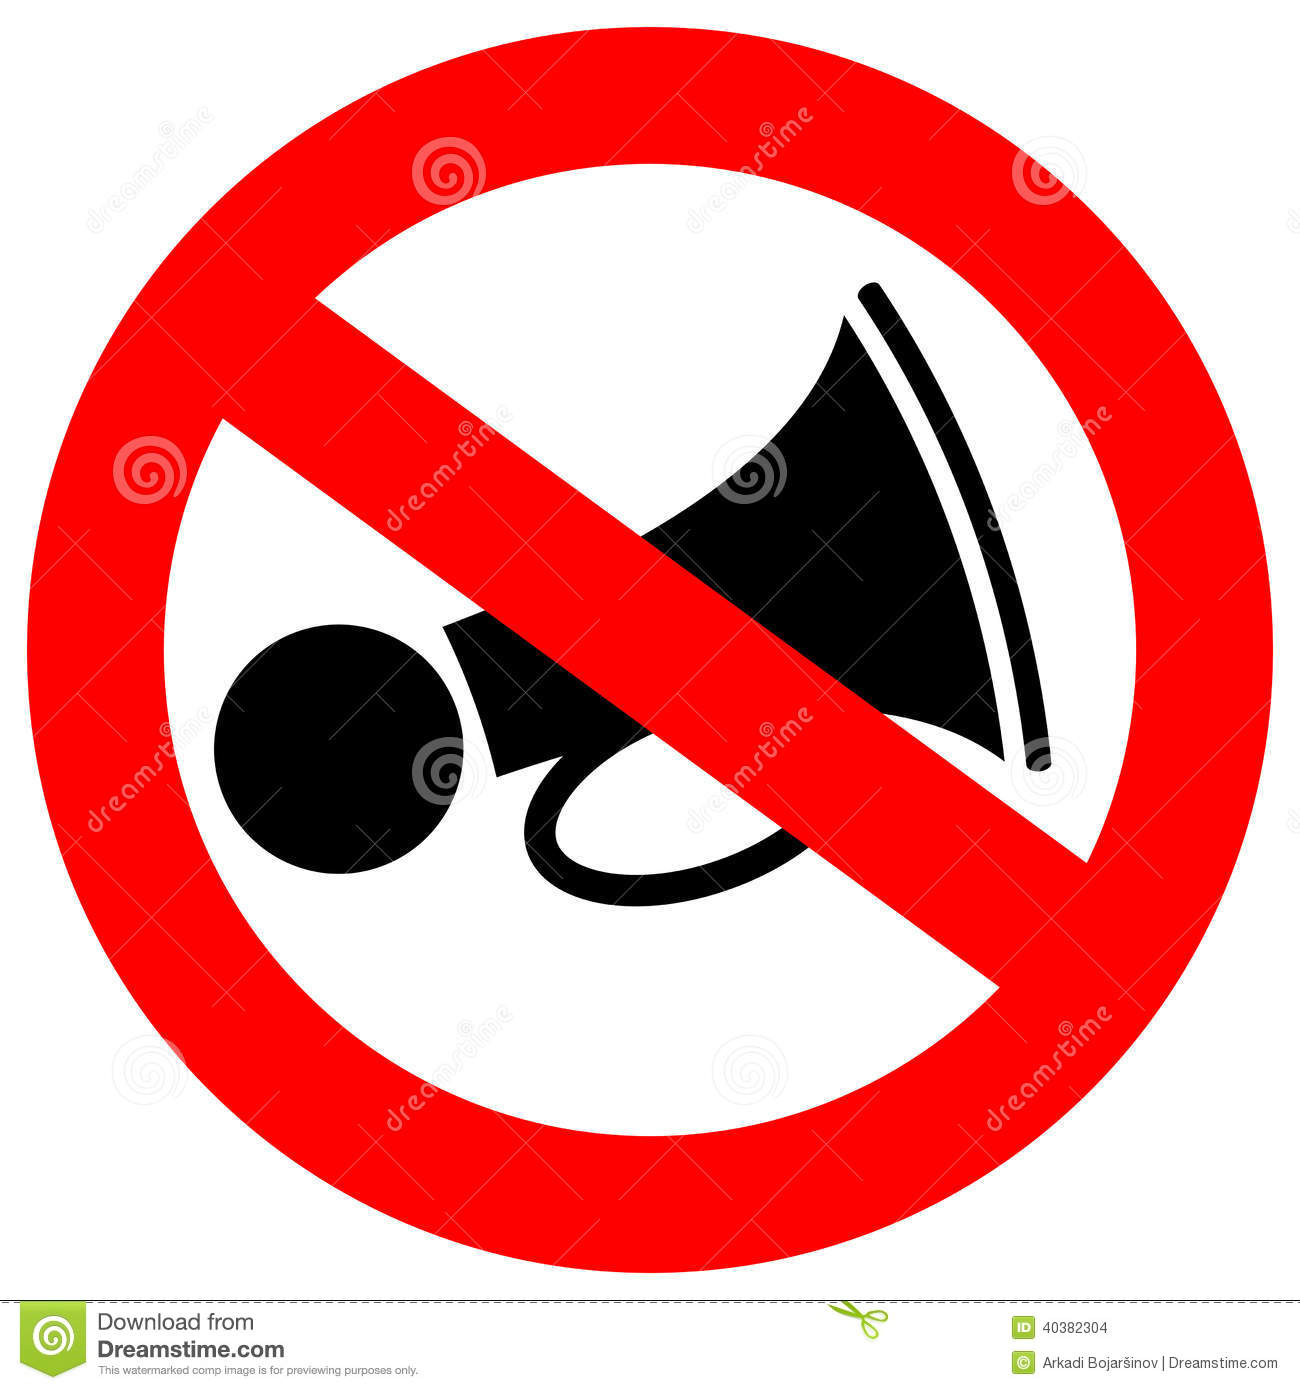 No Loud Sound Sign Stock Vector - Image: 40382304